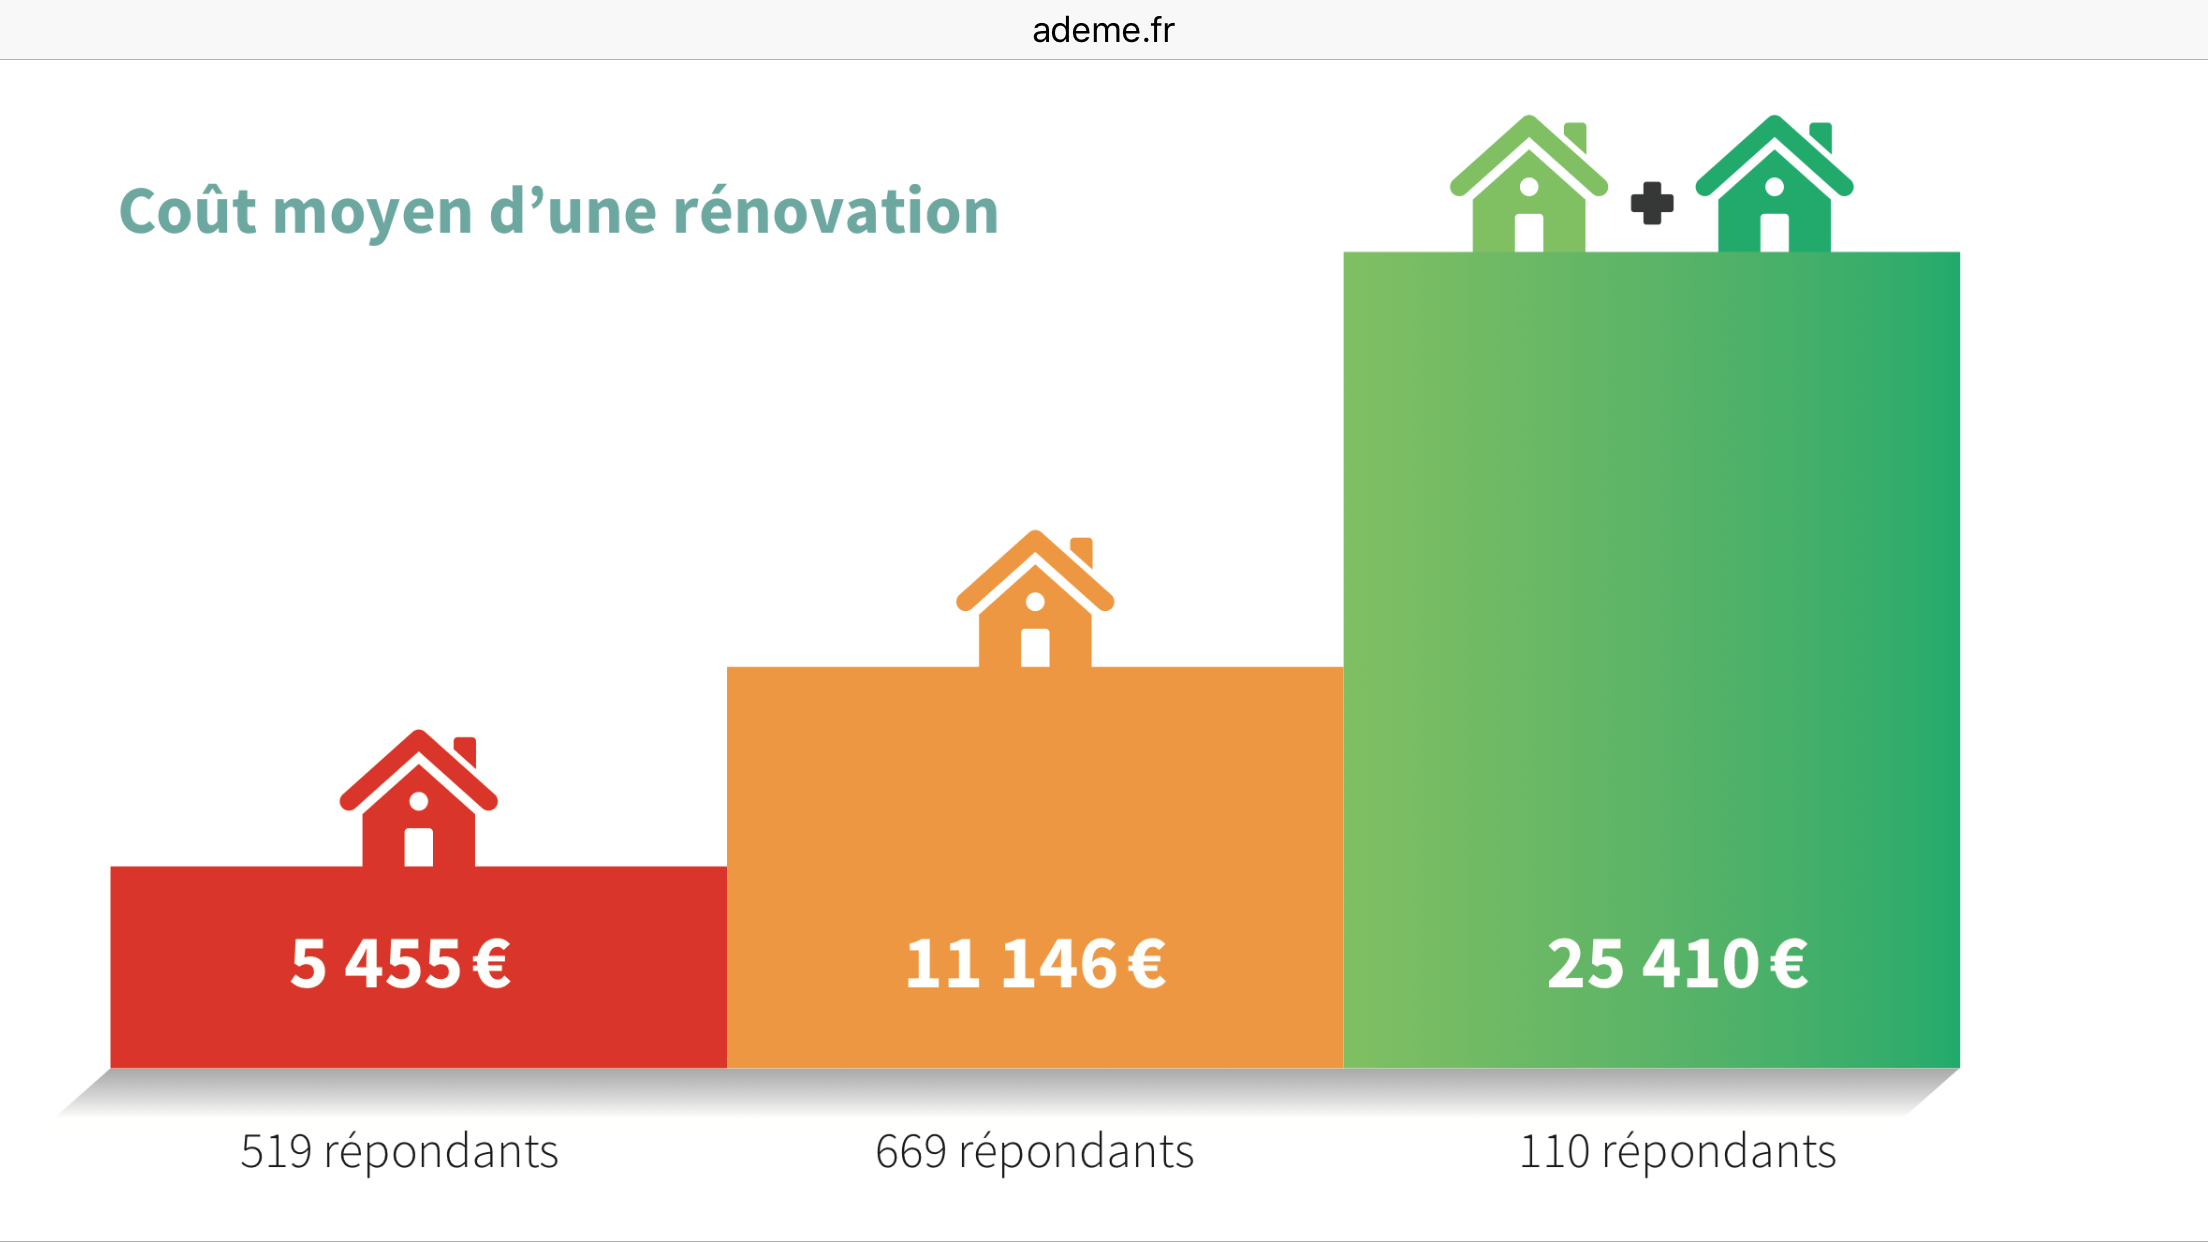 Bilan des rénovations en France